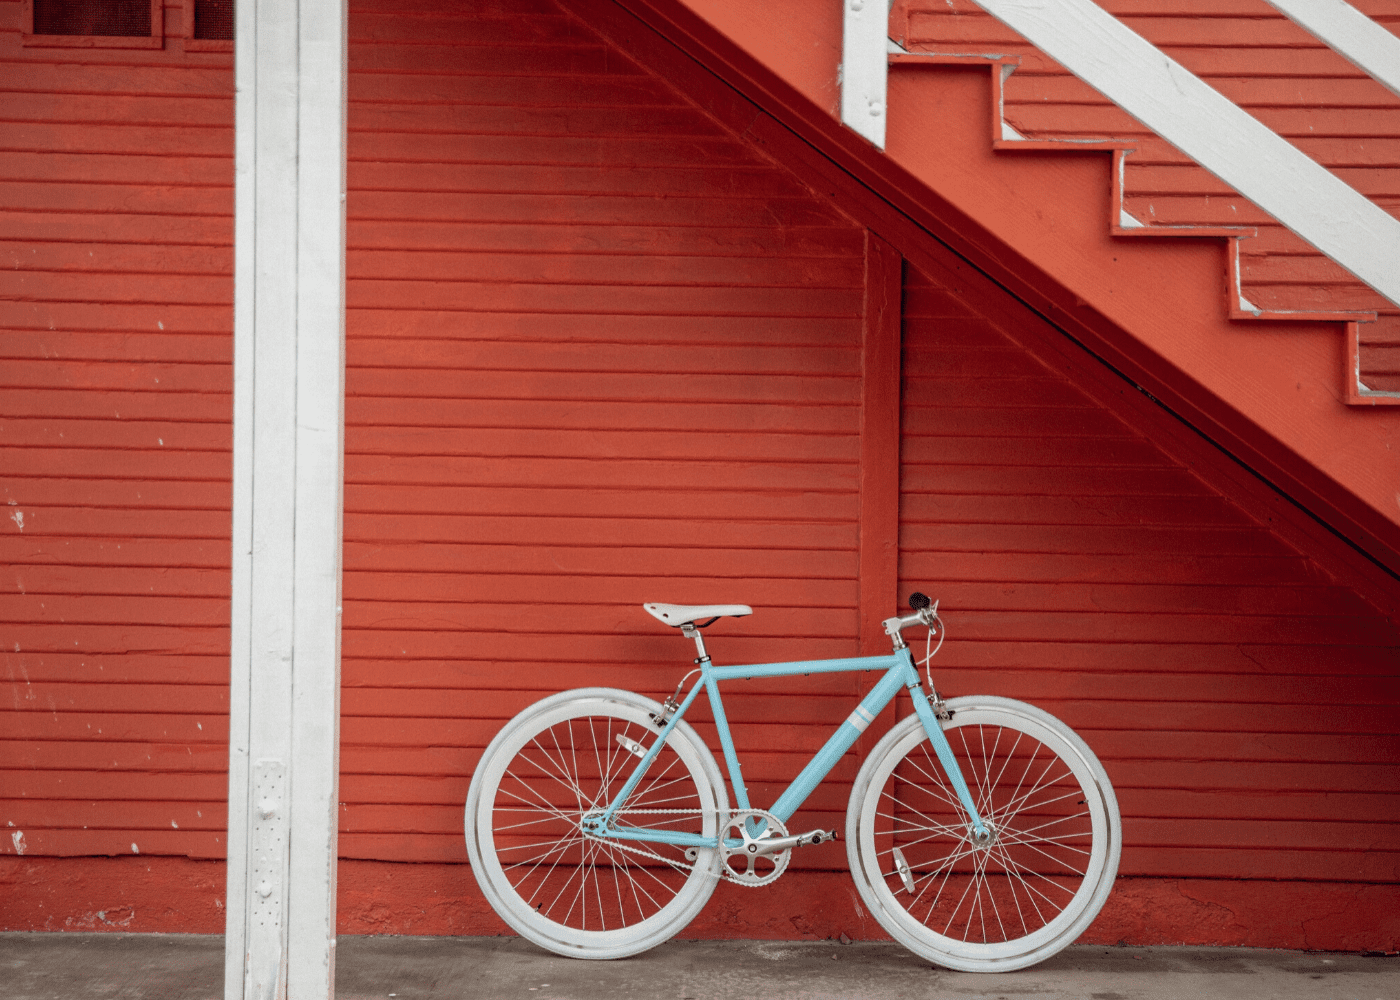 Bicycle shops in Singapore: Where to buy foldable wheels, customised bikes and cycling accessories